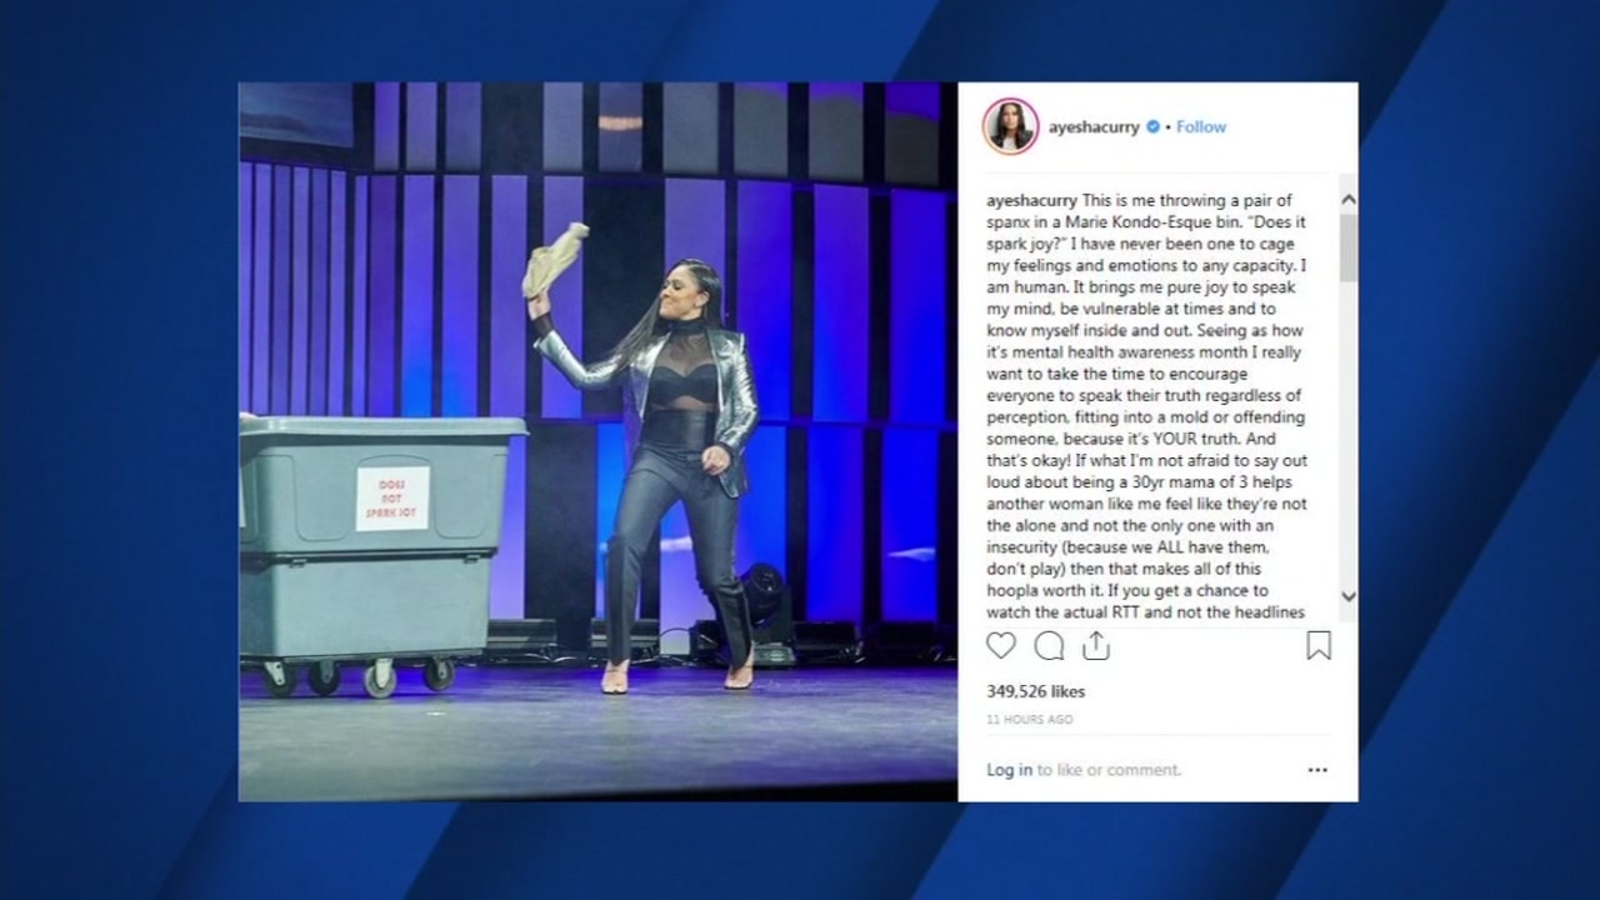 9b3eb315f21a Ayesha Curry responds to critics on social media on feeling  insecure